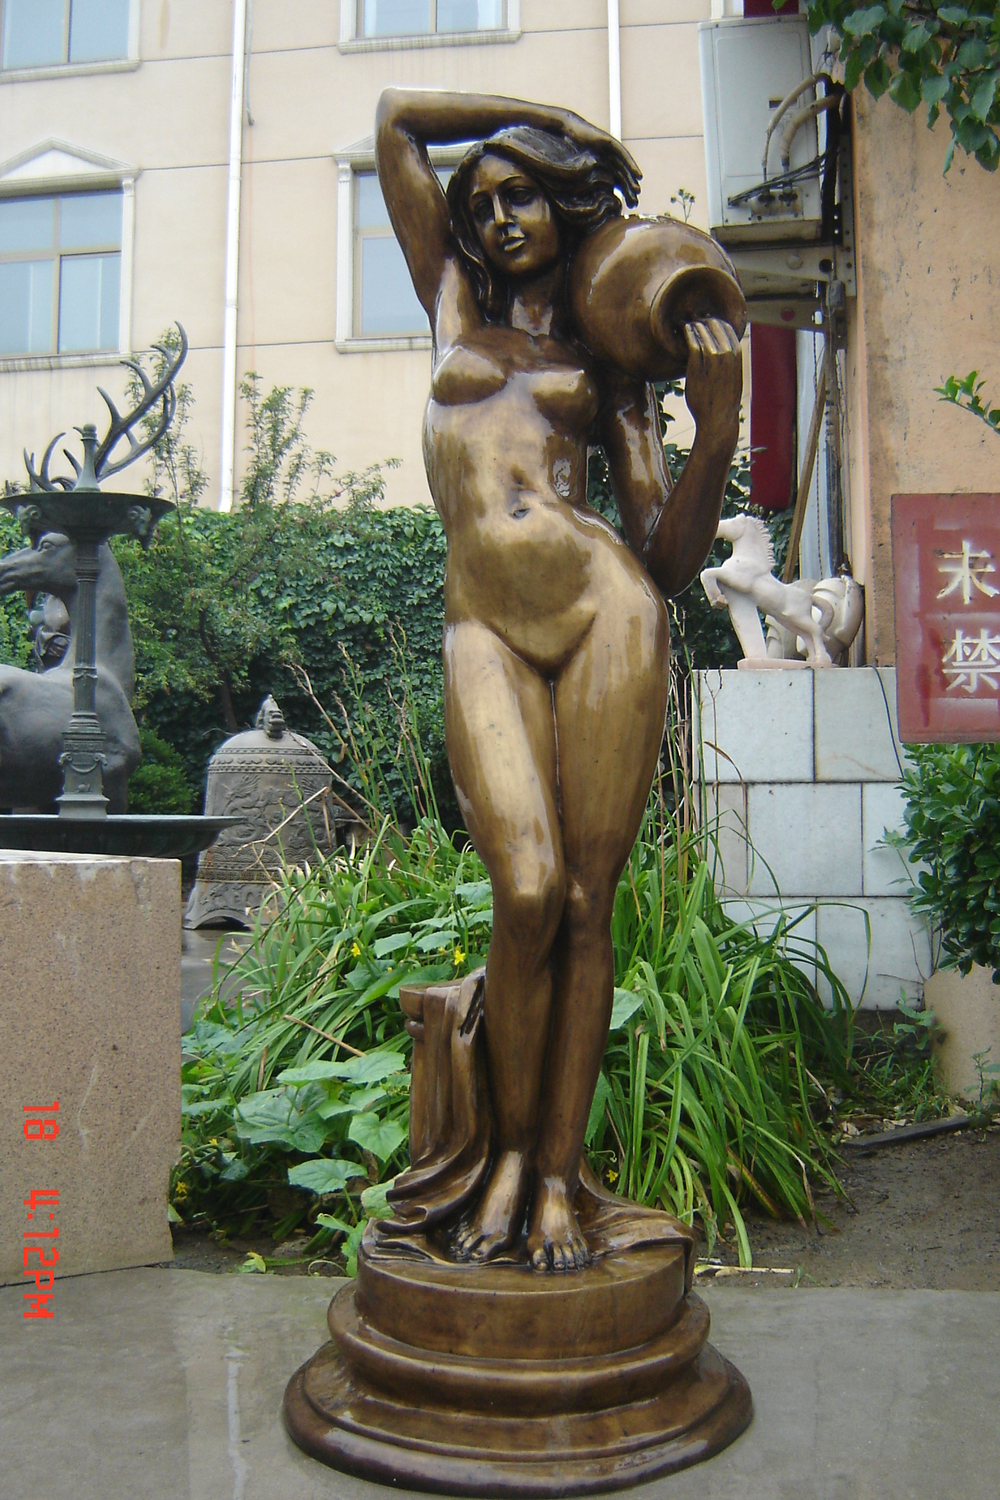 Excellent and Women having sex with statue